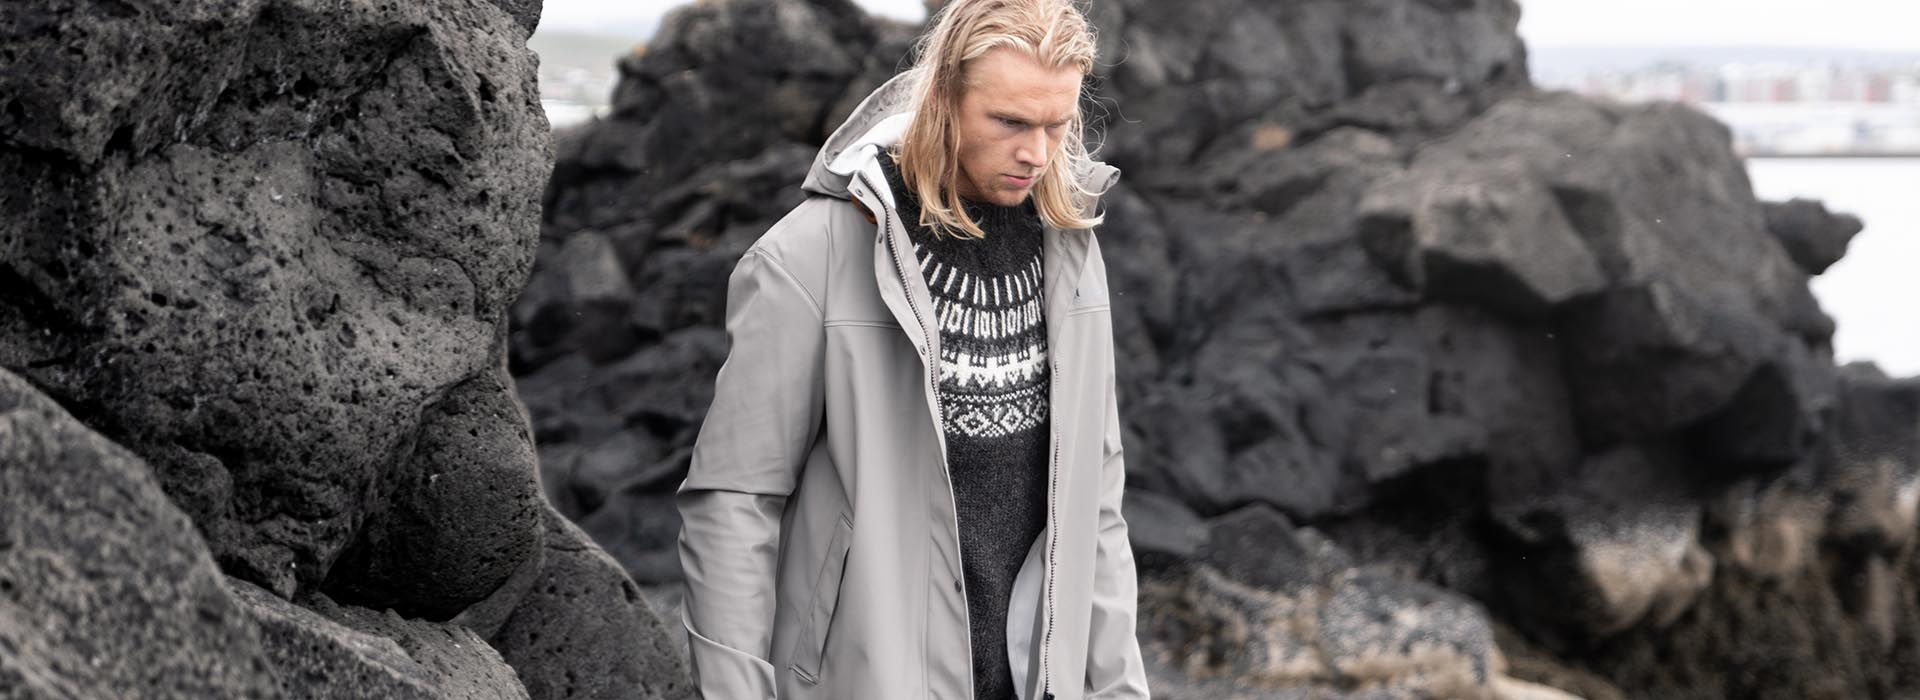 Outdoor clothing for men